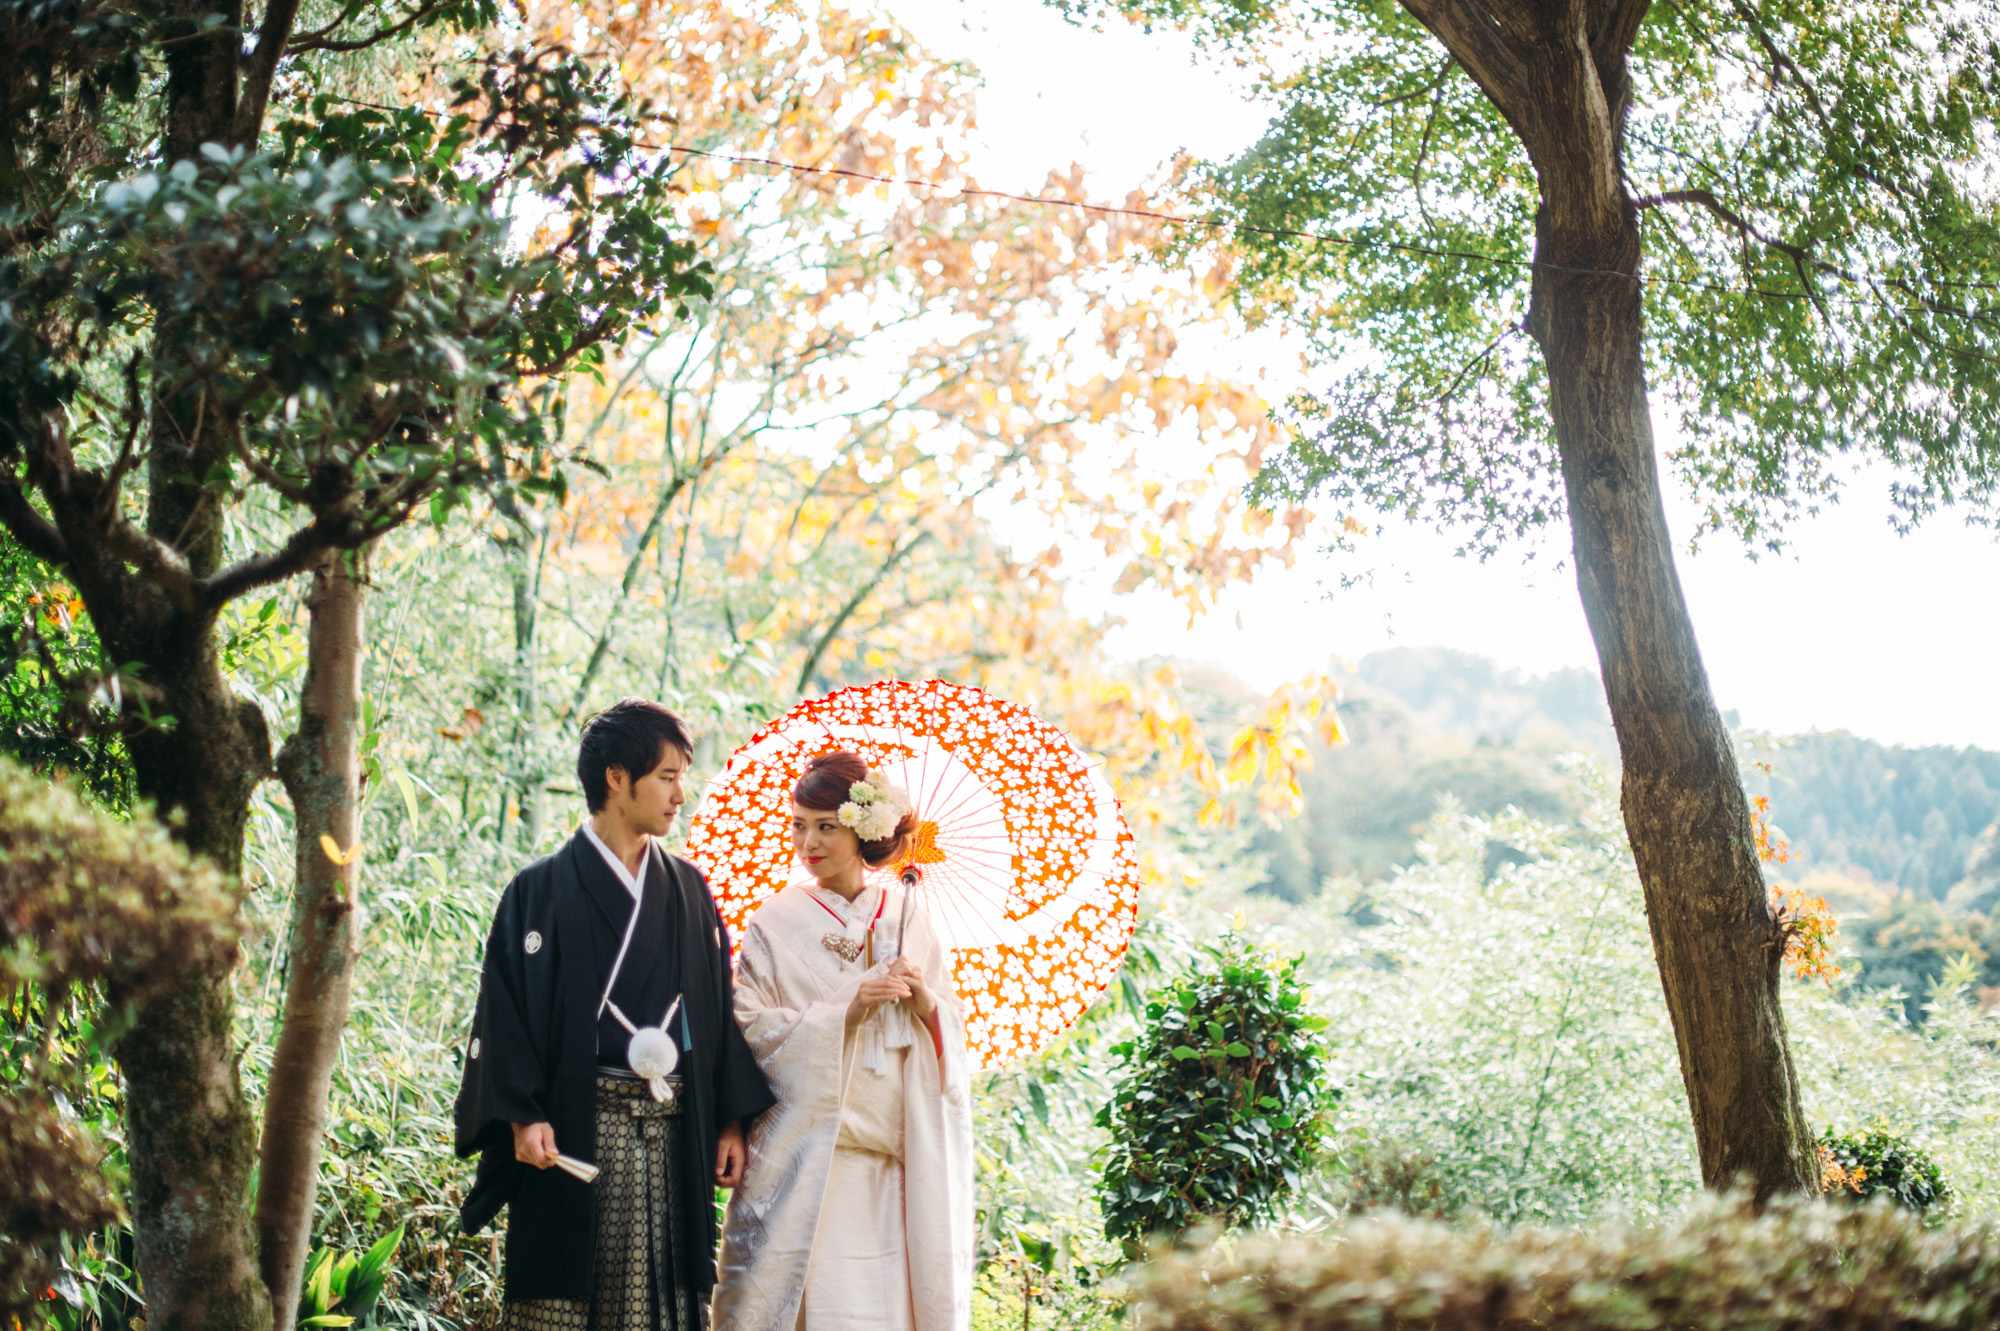 kyoto wedding0019